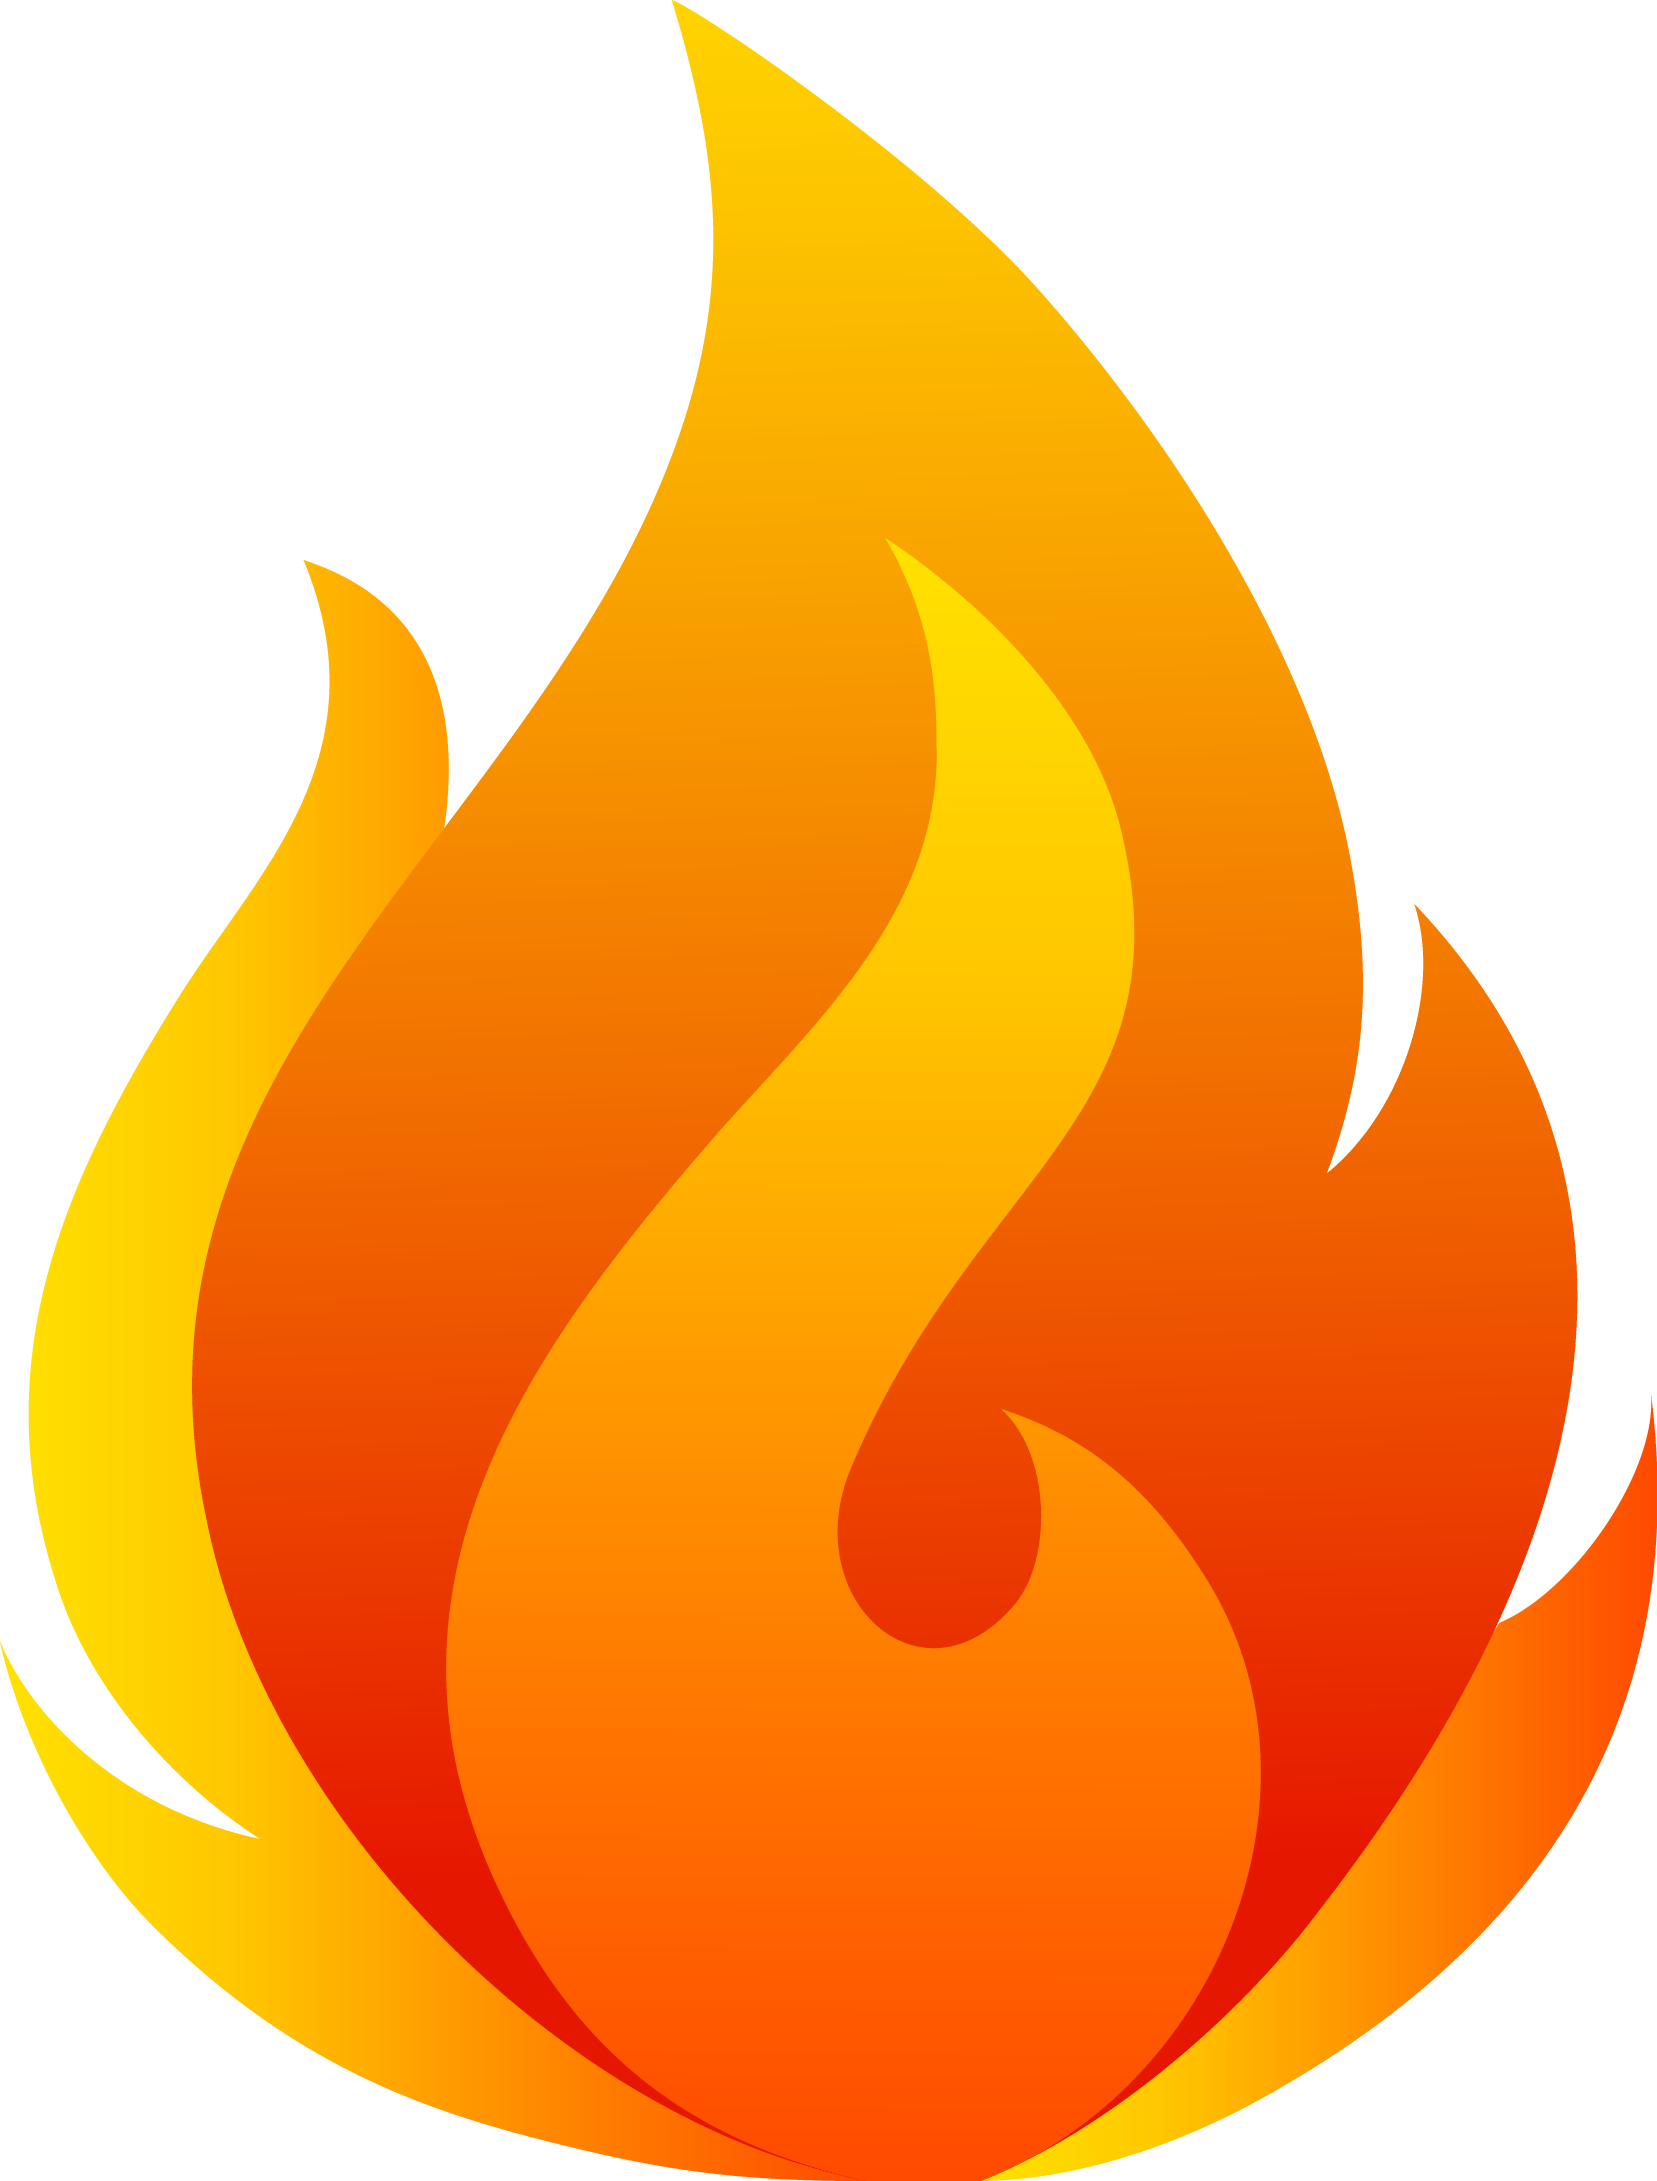 Cool flame flaming transprent. Clipart flames fire symbol